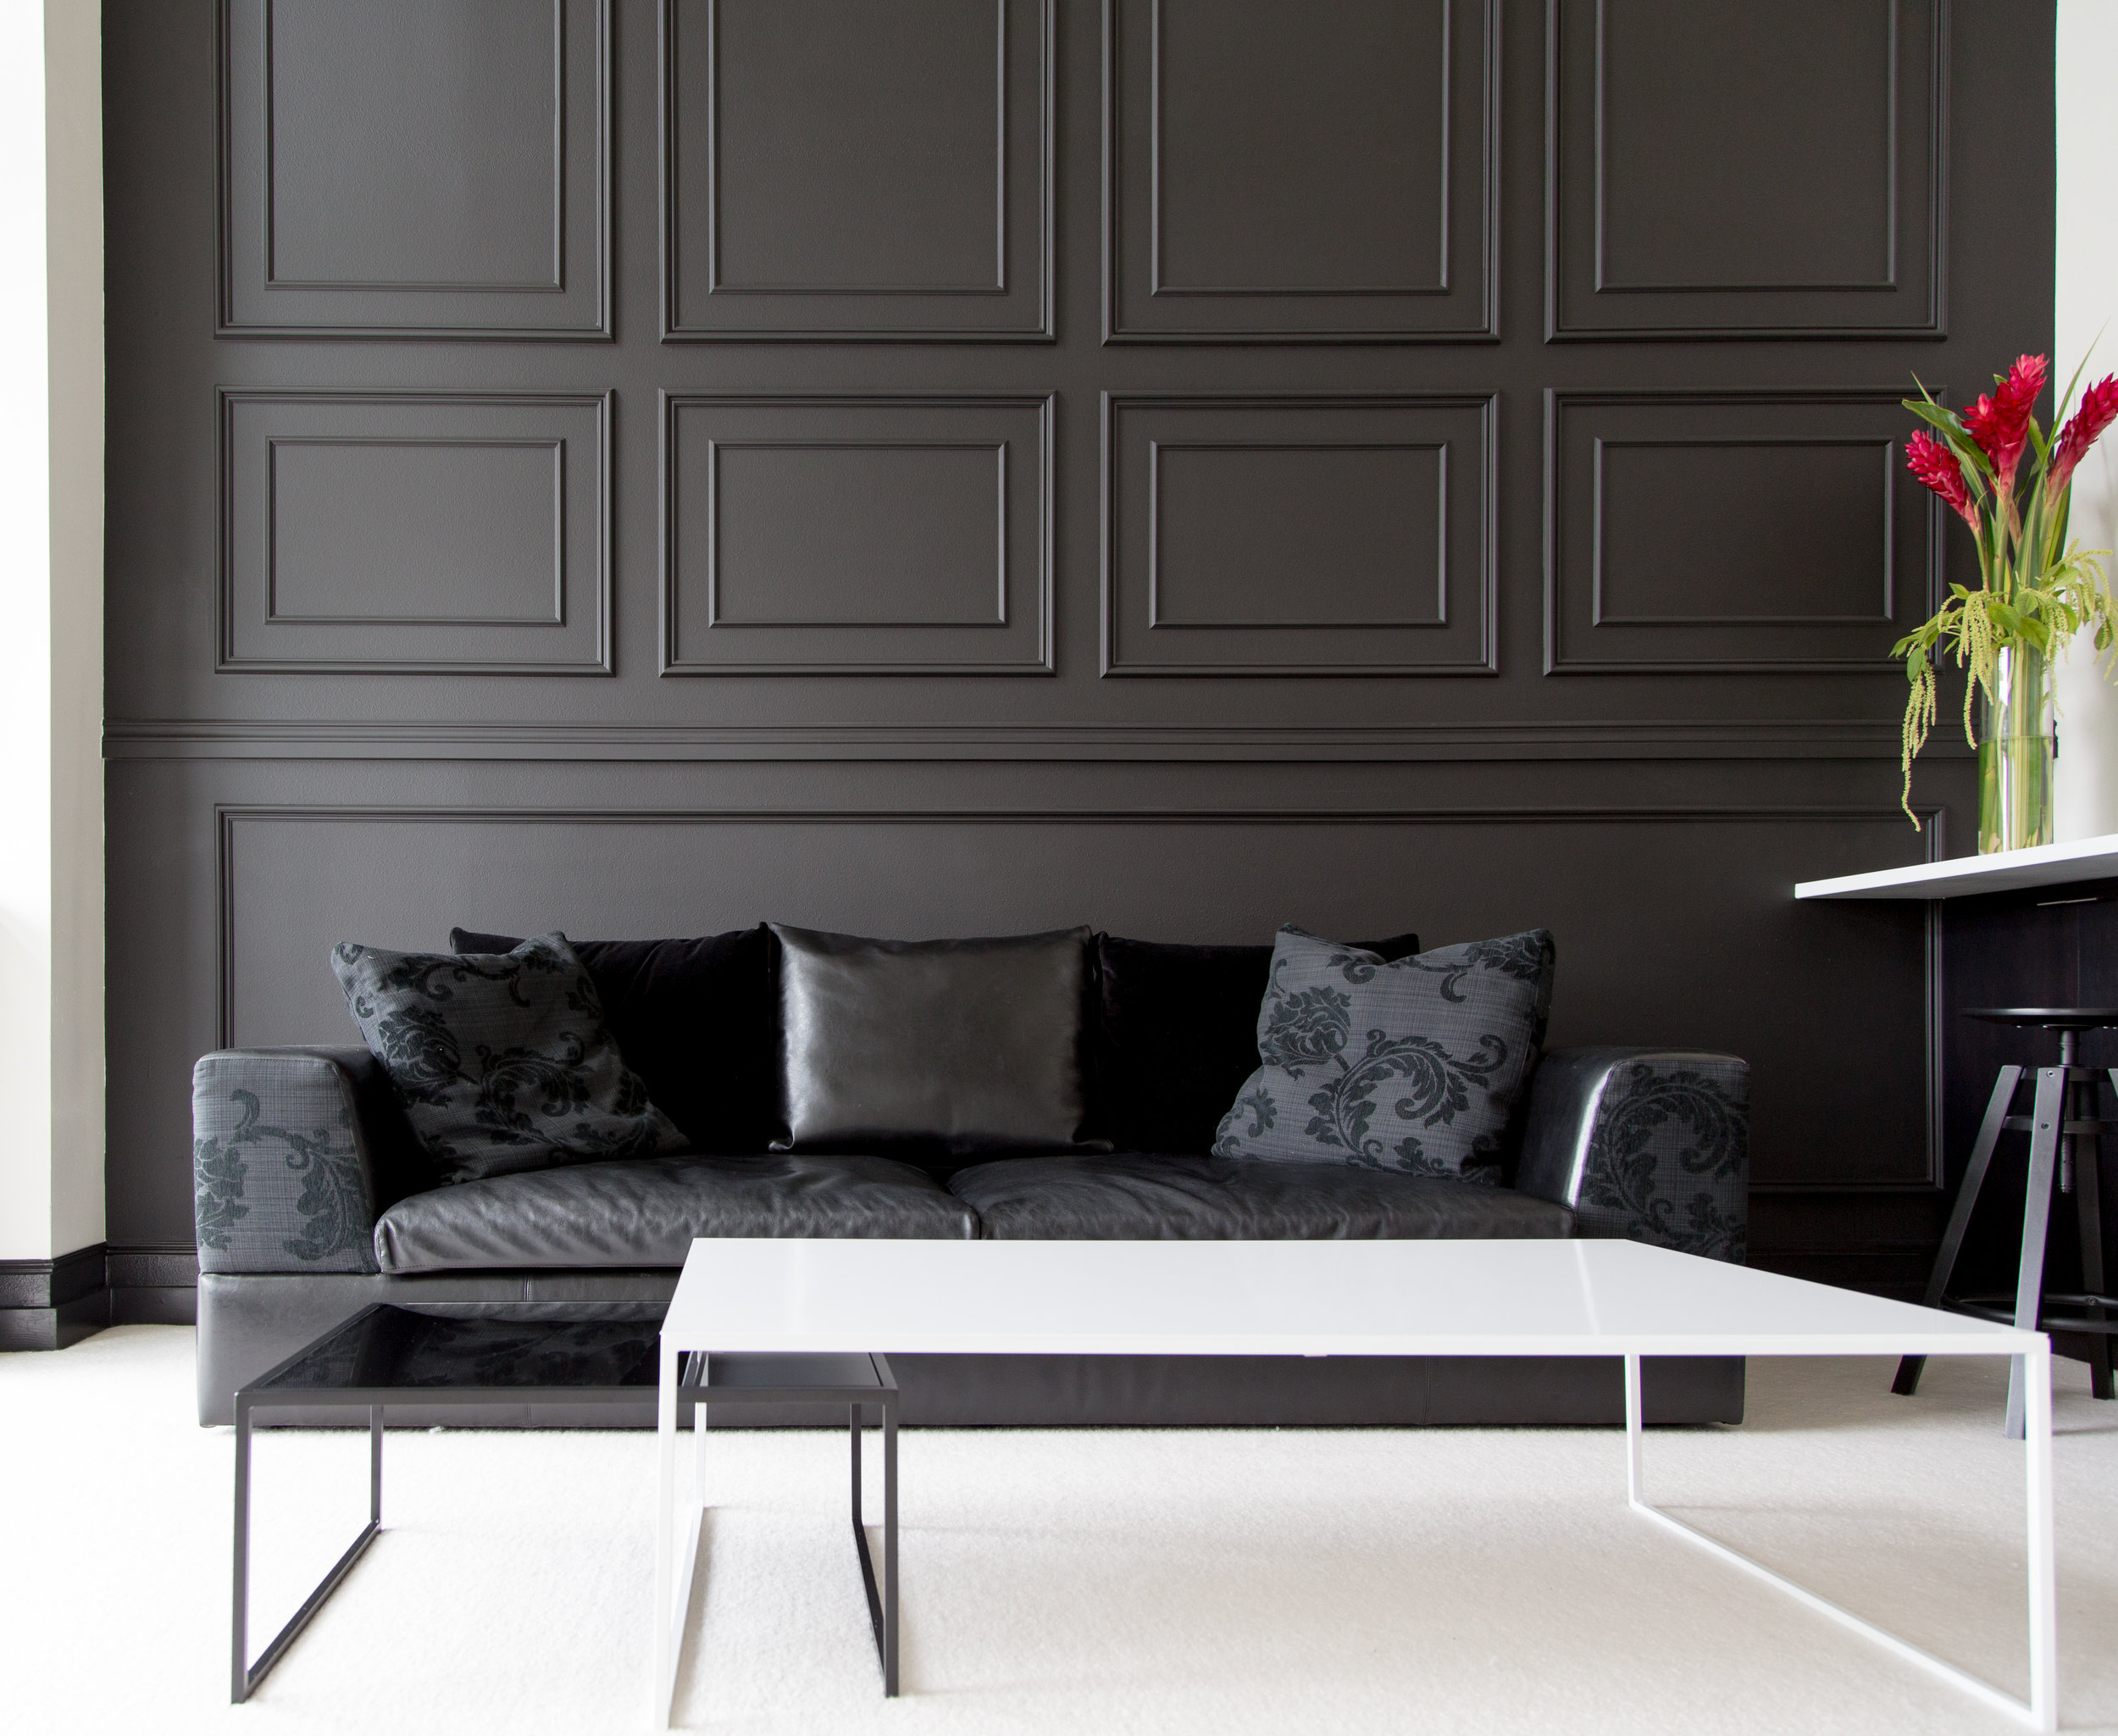 Black millwork and wainscotting in Seattle high-rise condominium with modern coffee table and sofa.